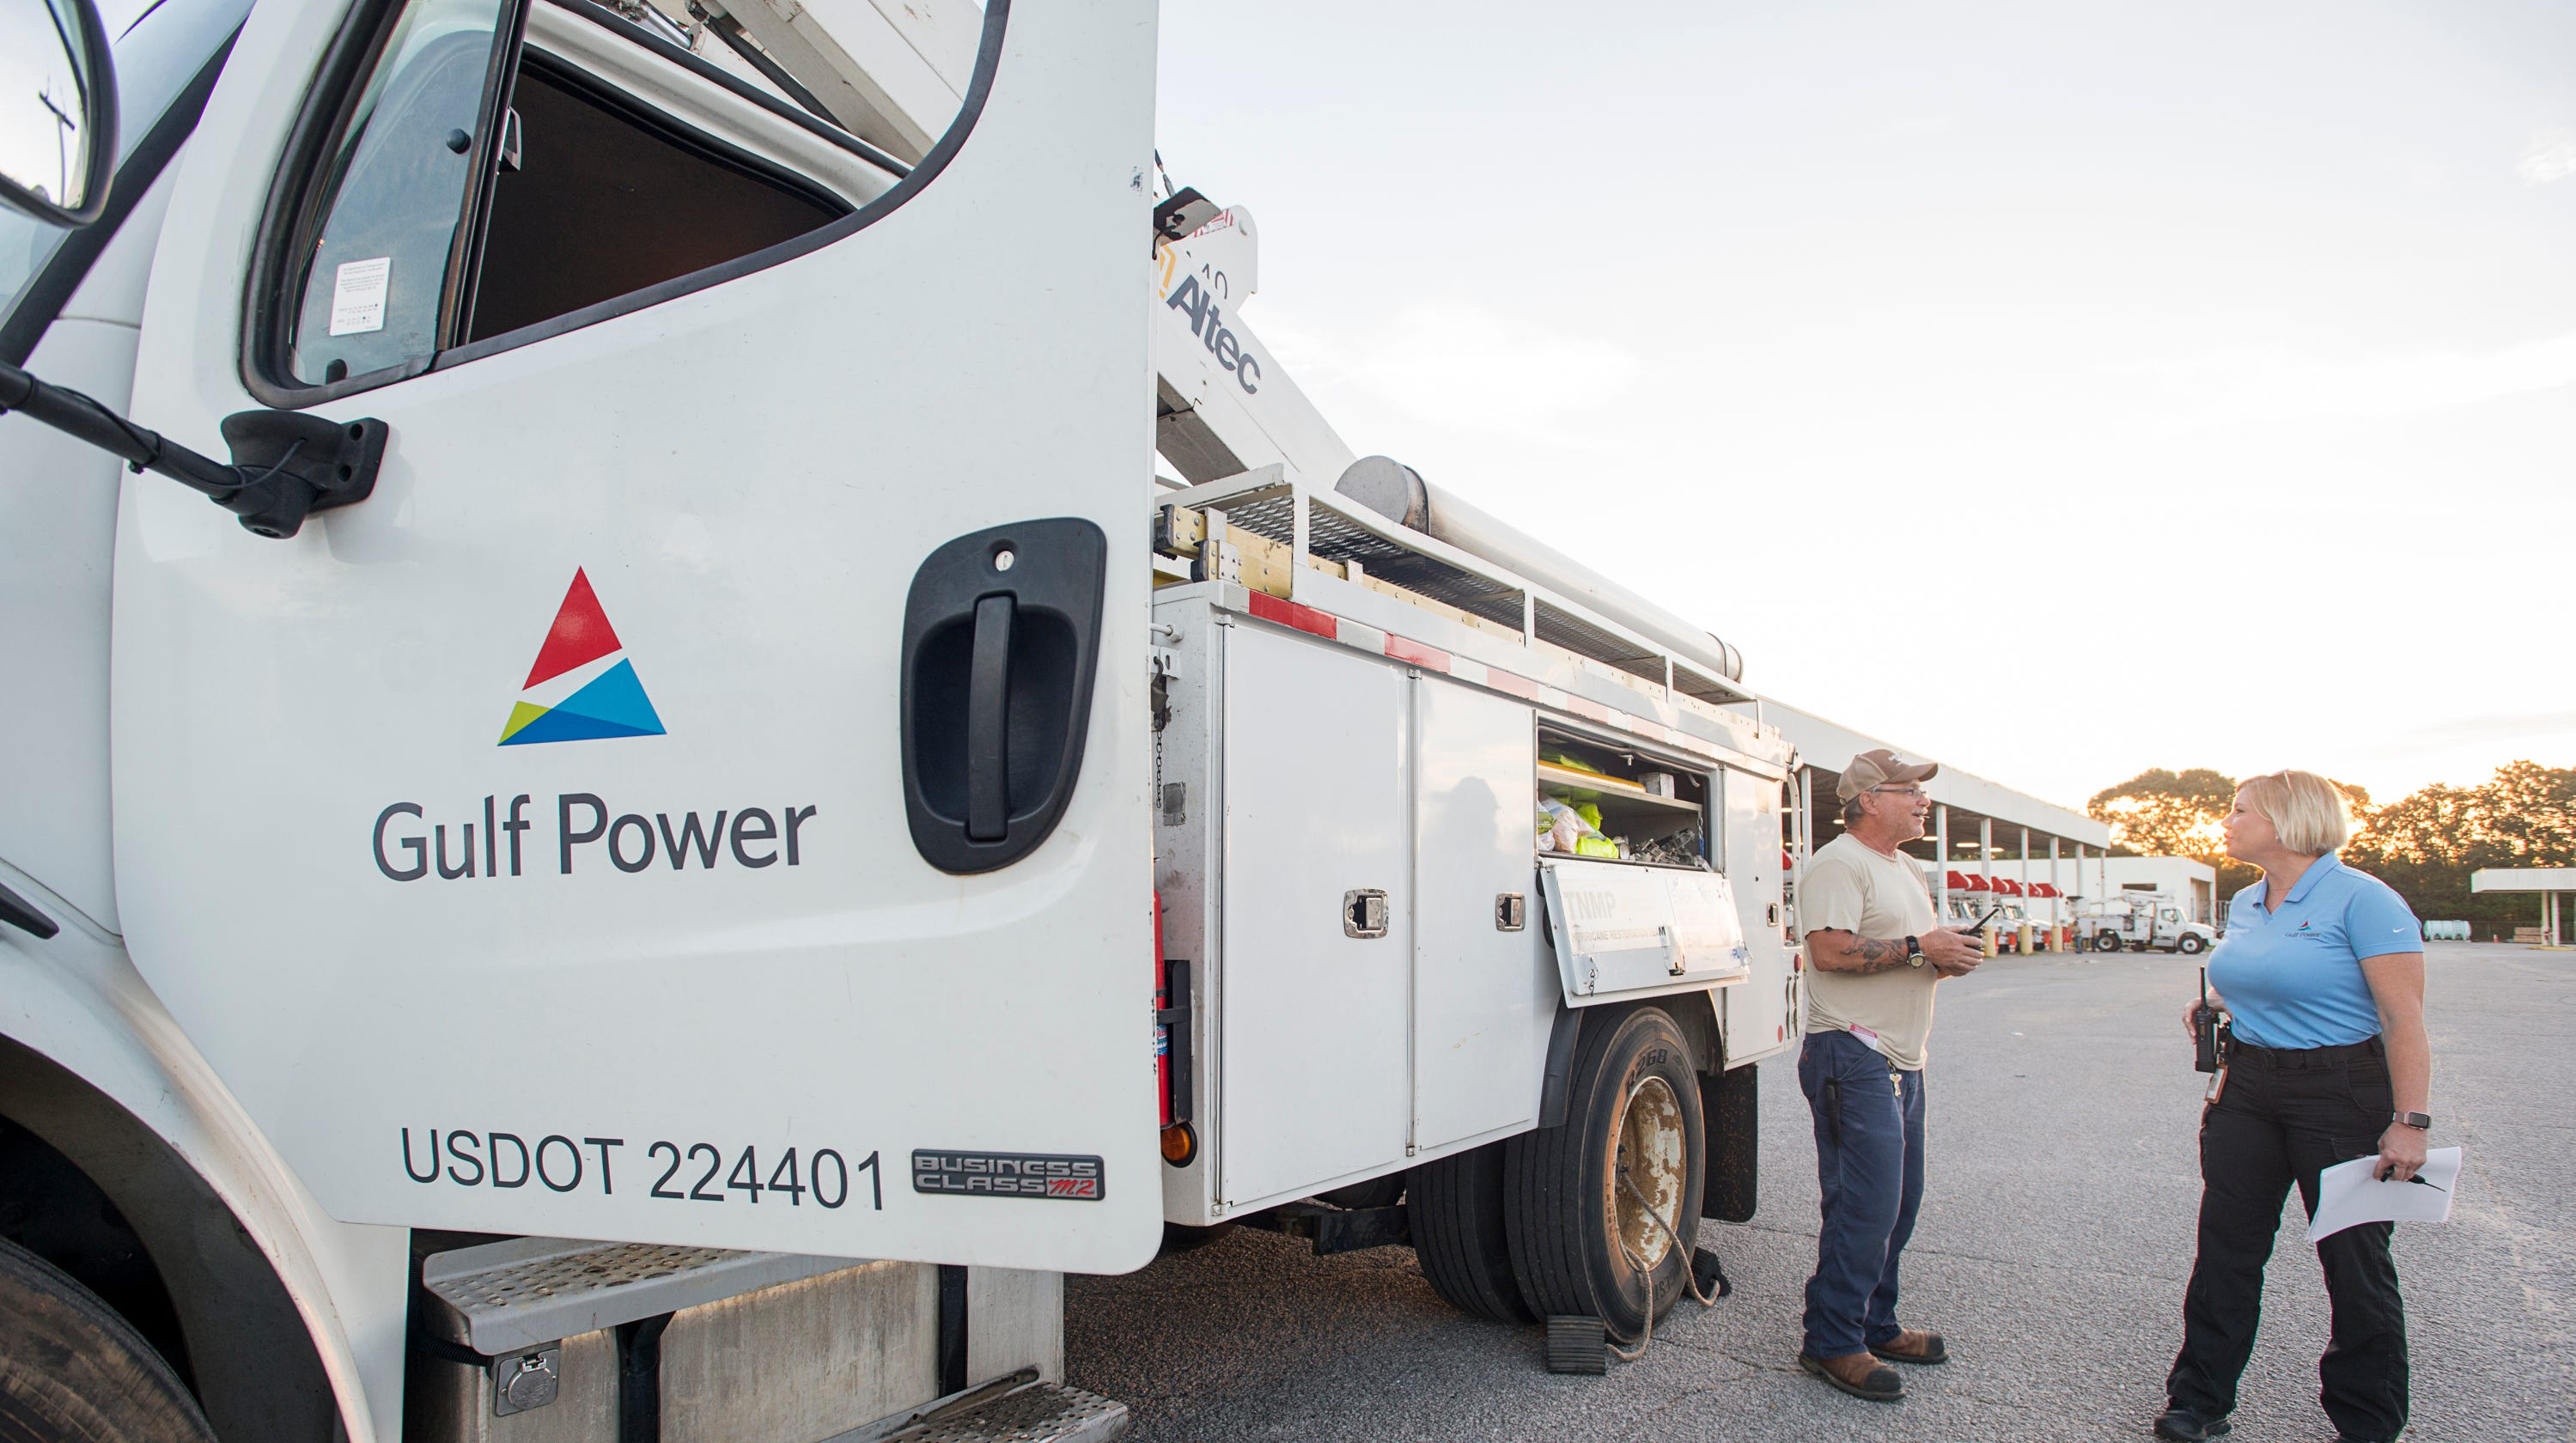 Gulf Power among 3 utilities pushing back against moratorium on disconnections